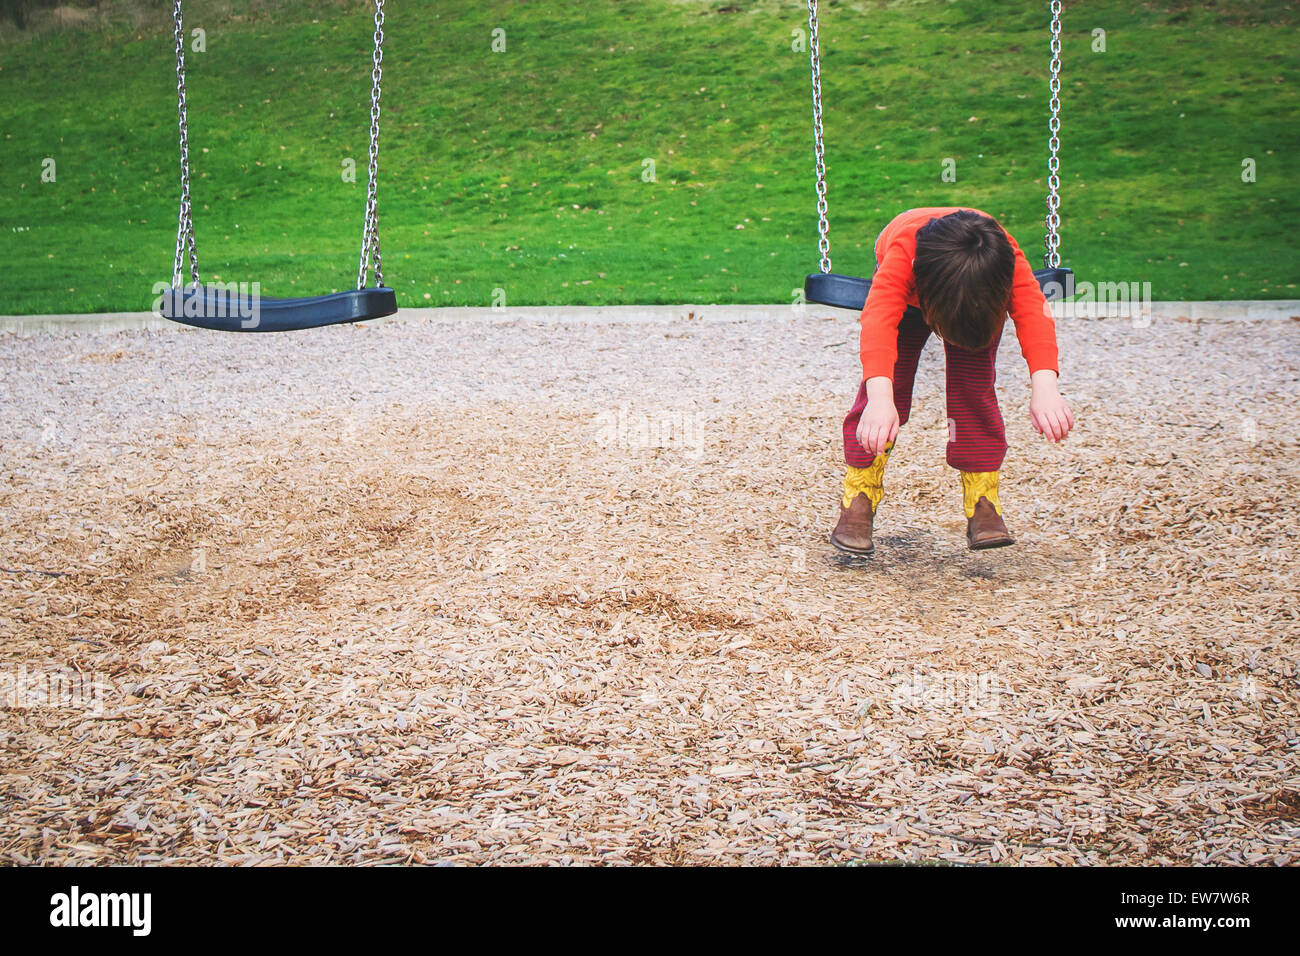 Boy hanging on a swing in a playground - Stock Image